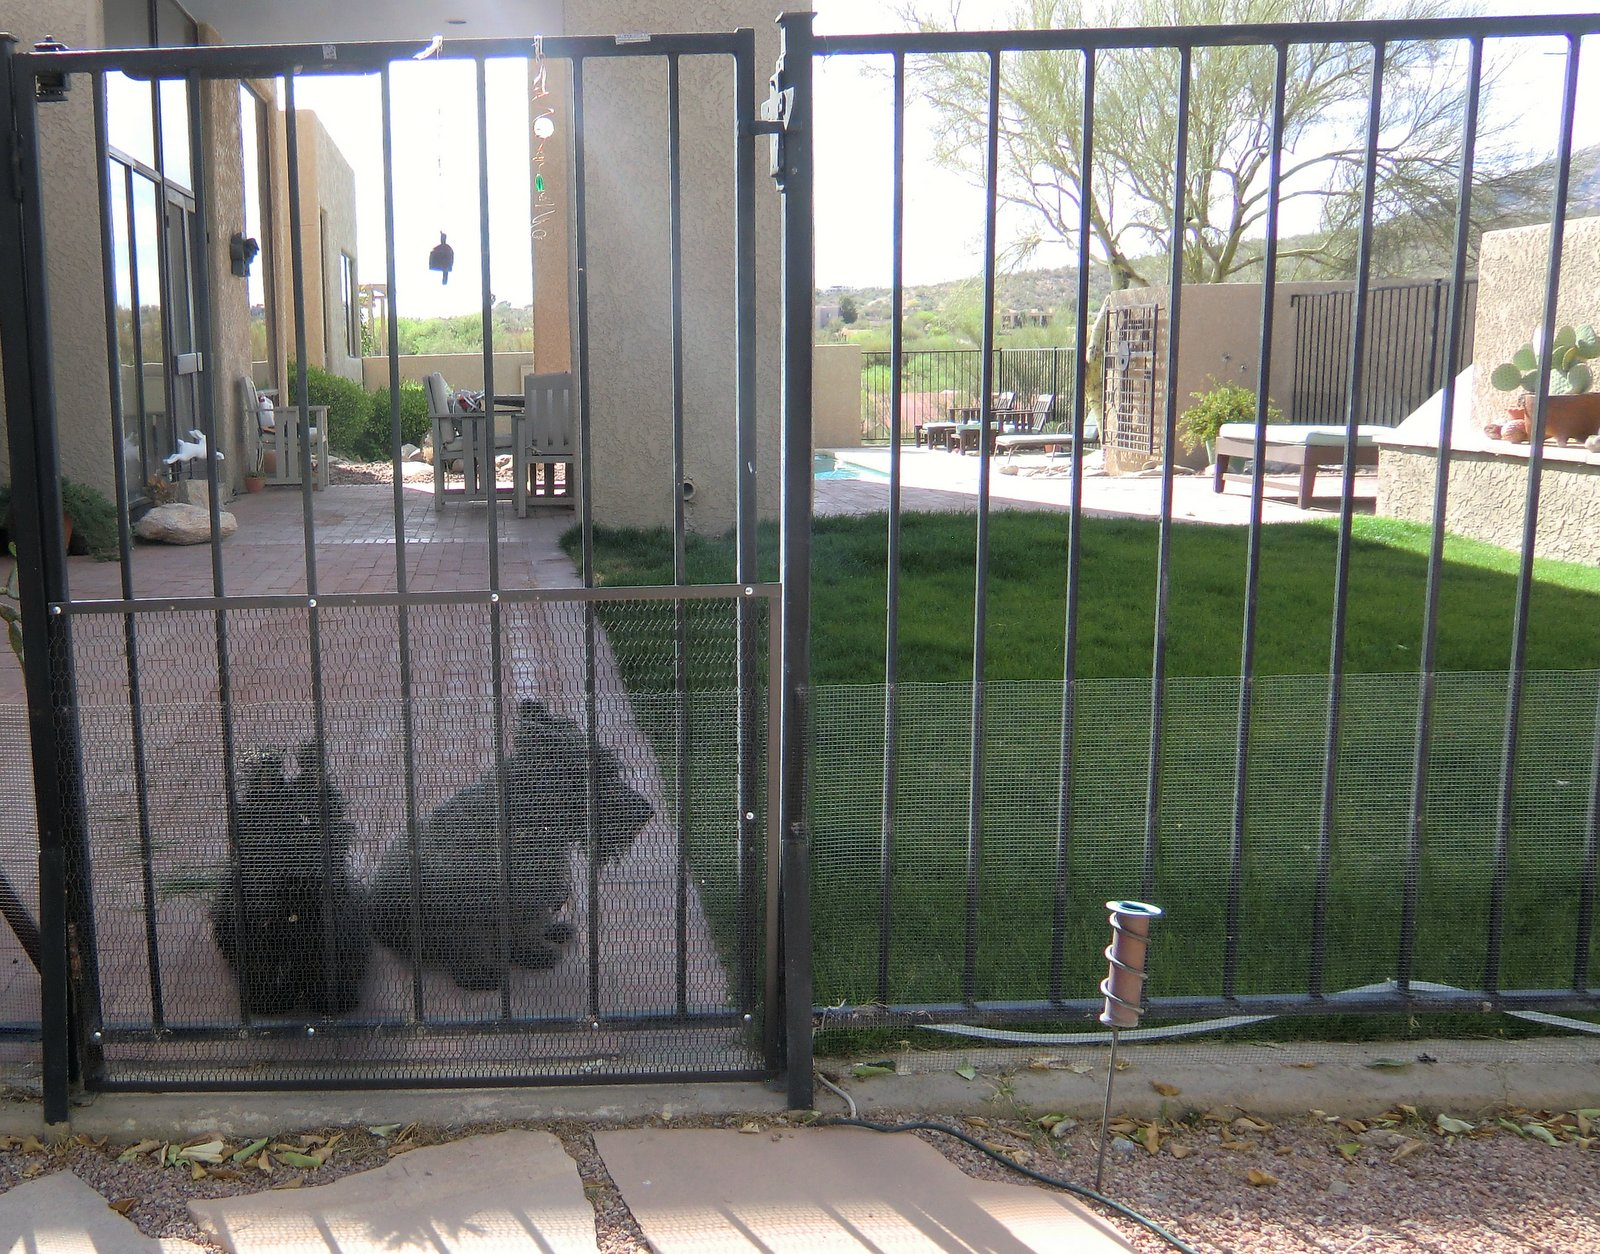 How To Keep Dog From Jumping Fence Two Little Square Black Dogs Square Dog Friday